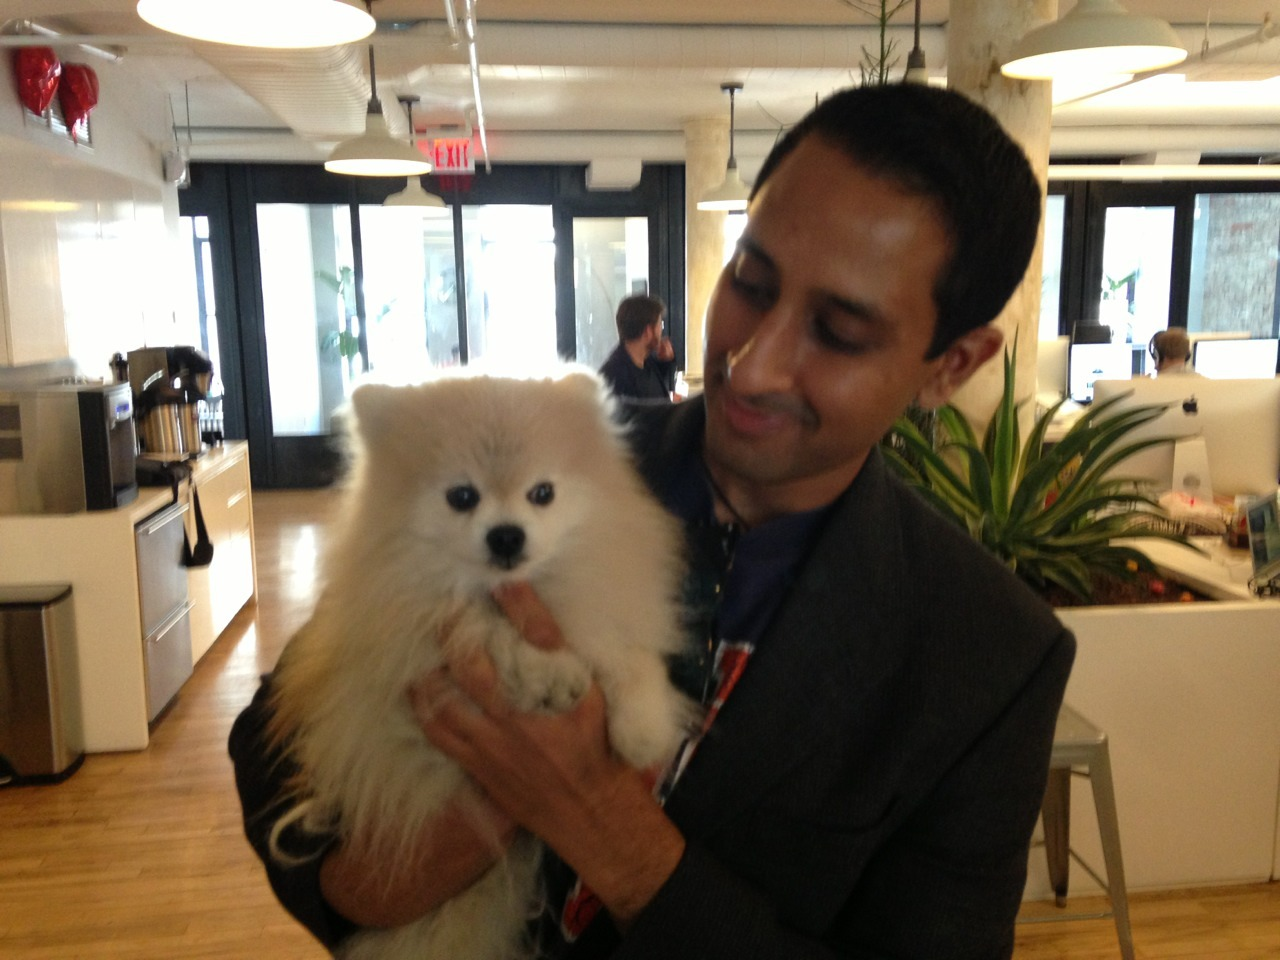 Today i met the creator of WeatherPuppy when he visited the Tumblr HQ! We discussed some exciting plans for the future and debated over the cutest pups in the app.